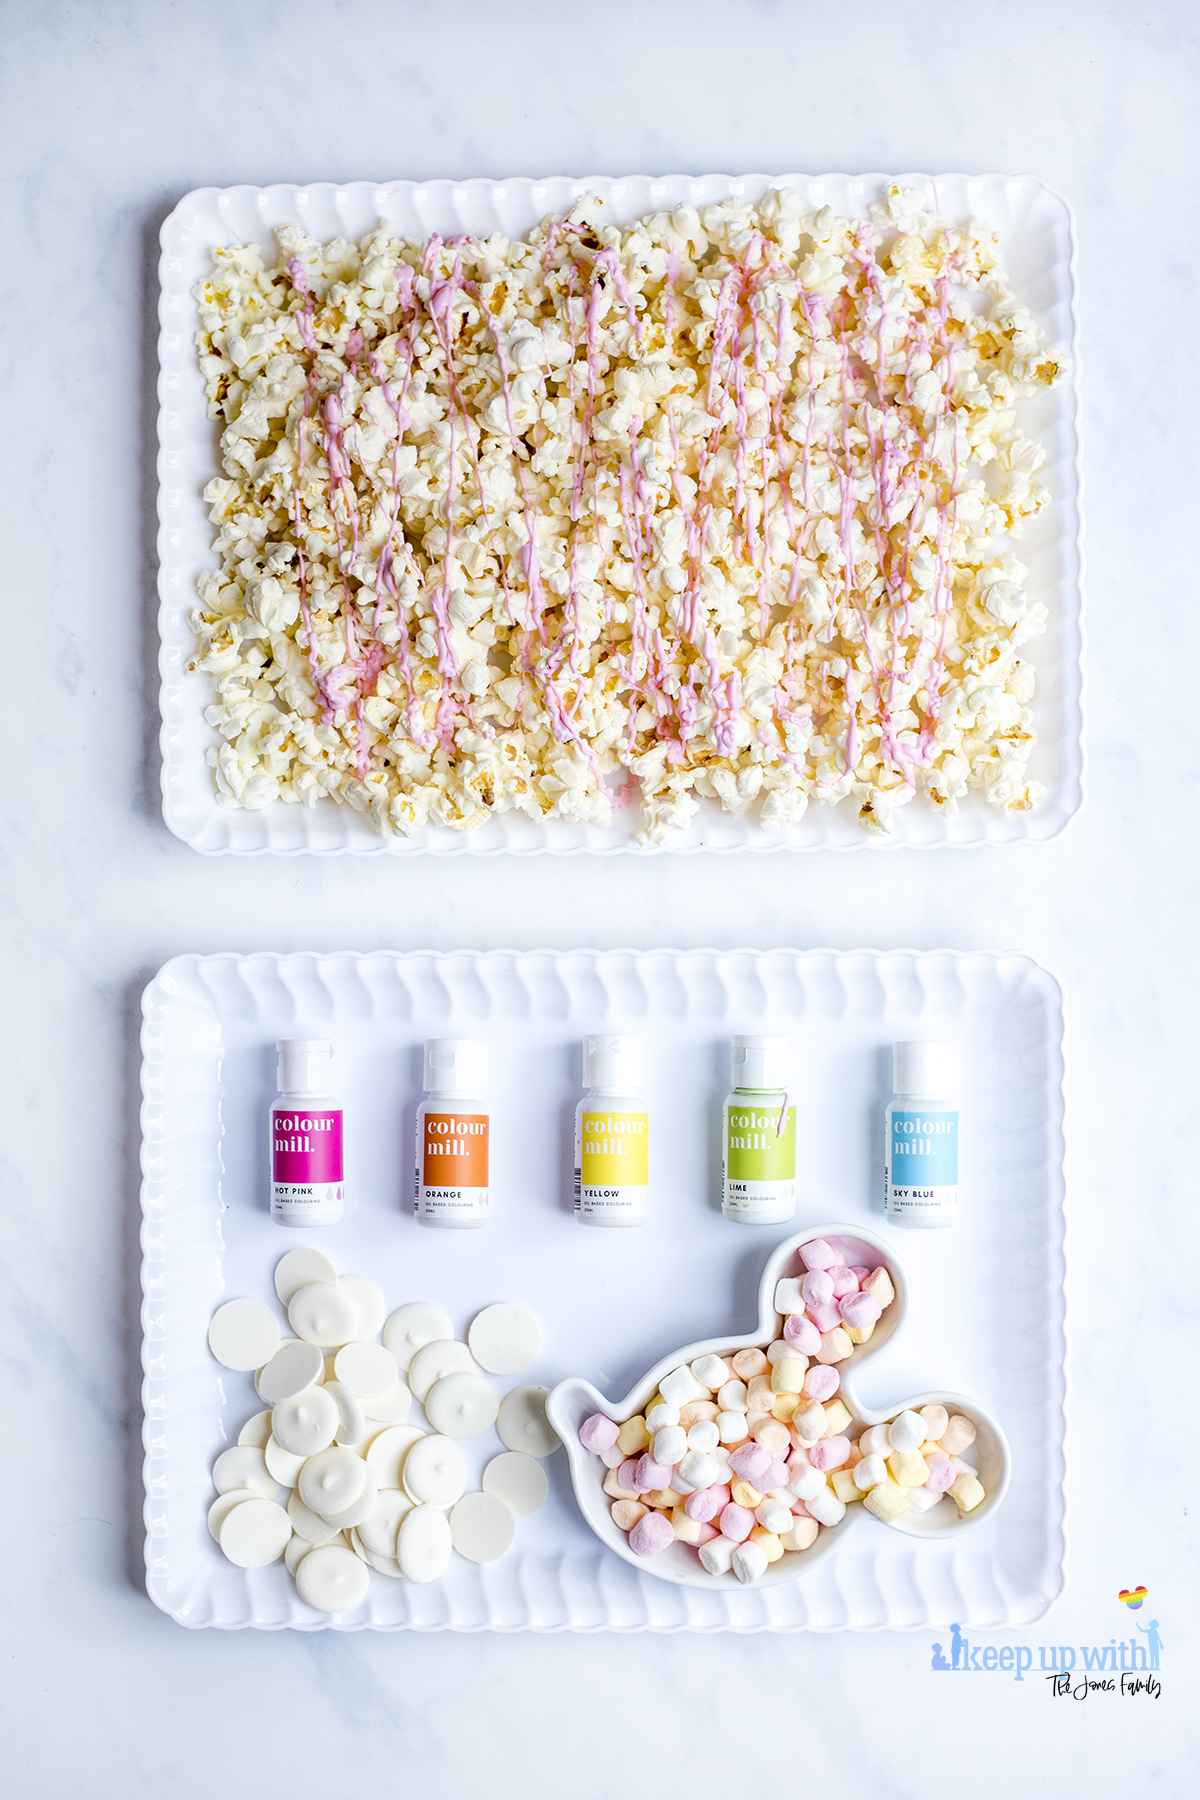 Image shows the ingredients used to make Mermaid Popcorn. Popcorn, spread evenly into a white scalloped tray, which has been coated in drizzled pink candy melts, a pile of bright white candy melts, a mickey mouse shaped bowl of mini marshmallows and oil based food colourings from Colour Mill. Image by Sara-Jayne from keep Up With the Jones family.